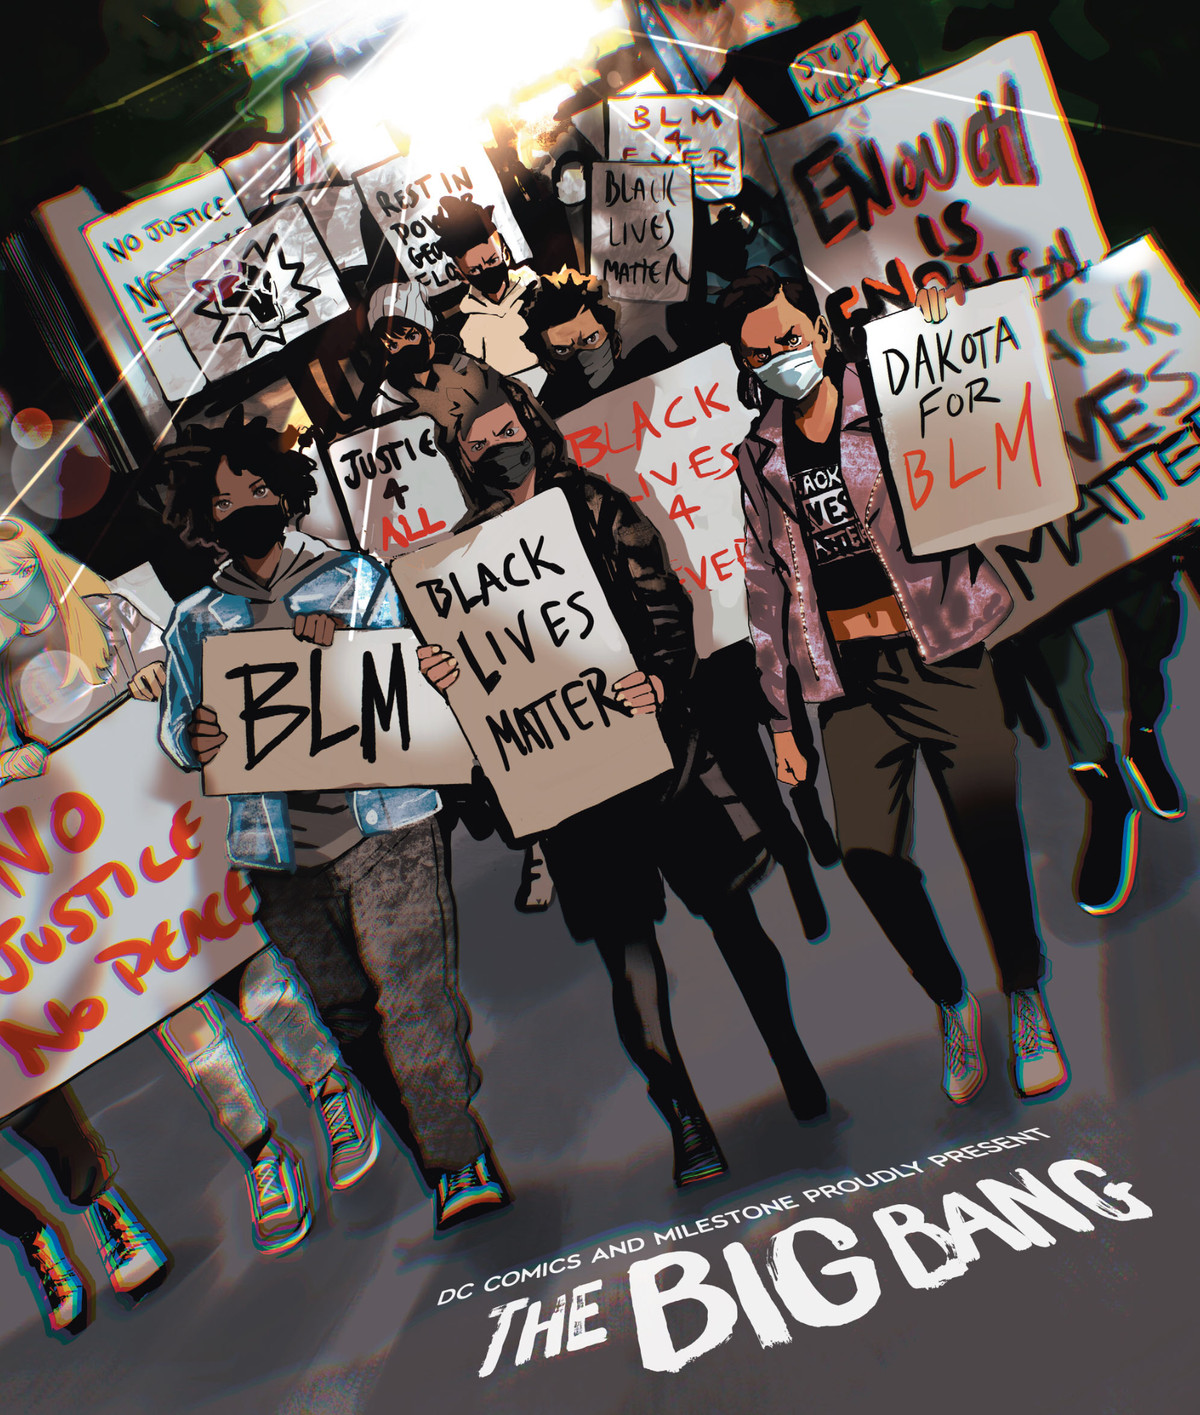 Teenagers march through the streets wearing face masks, and carrying signs that say Black Lives Matter, Dakota for BLM, Enough is Enough, Rest in Power George Floyd, and Not Justice No Peace in Milestone Returns #0, DC Comics (2021).